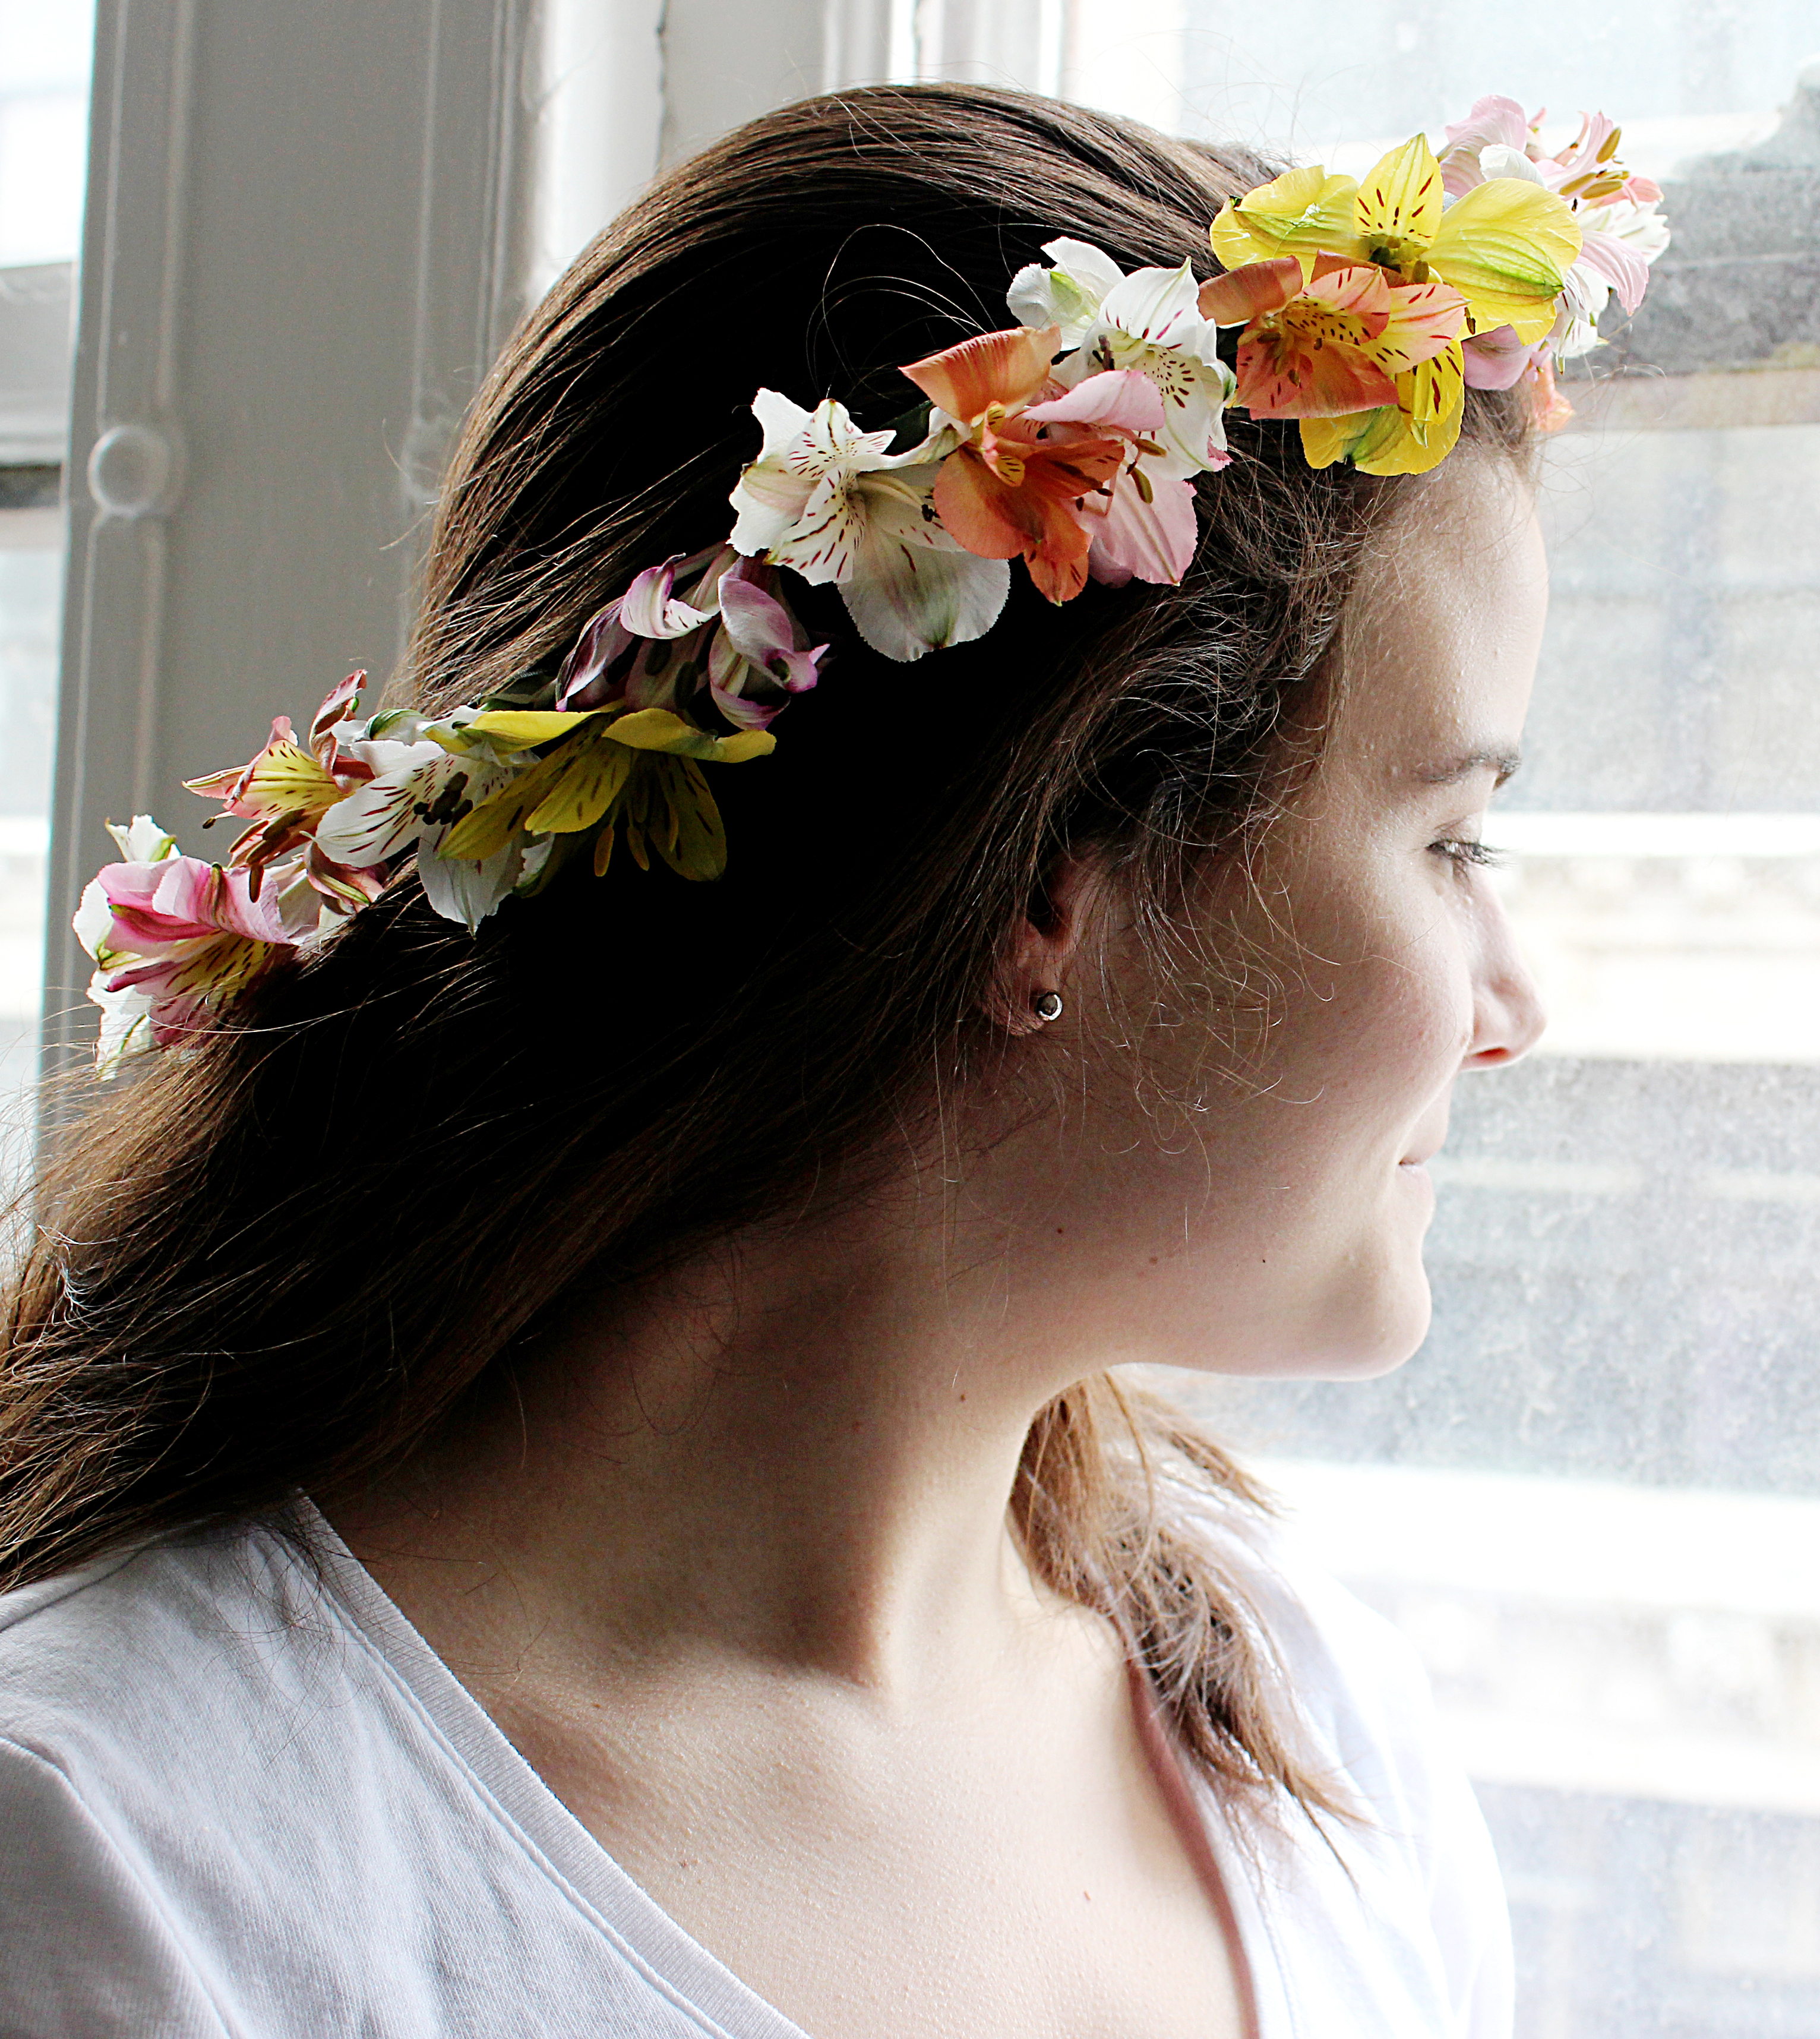 How to make a flower crown petal talk 1 800 flowers how to make a flower crown izmirmasajfo